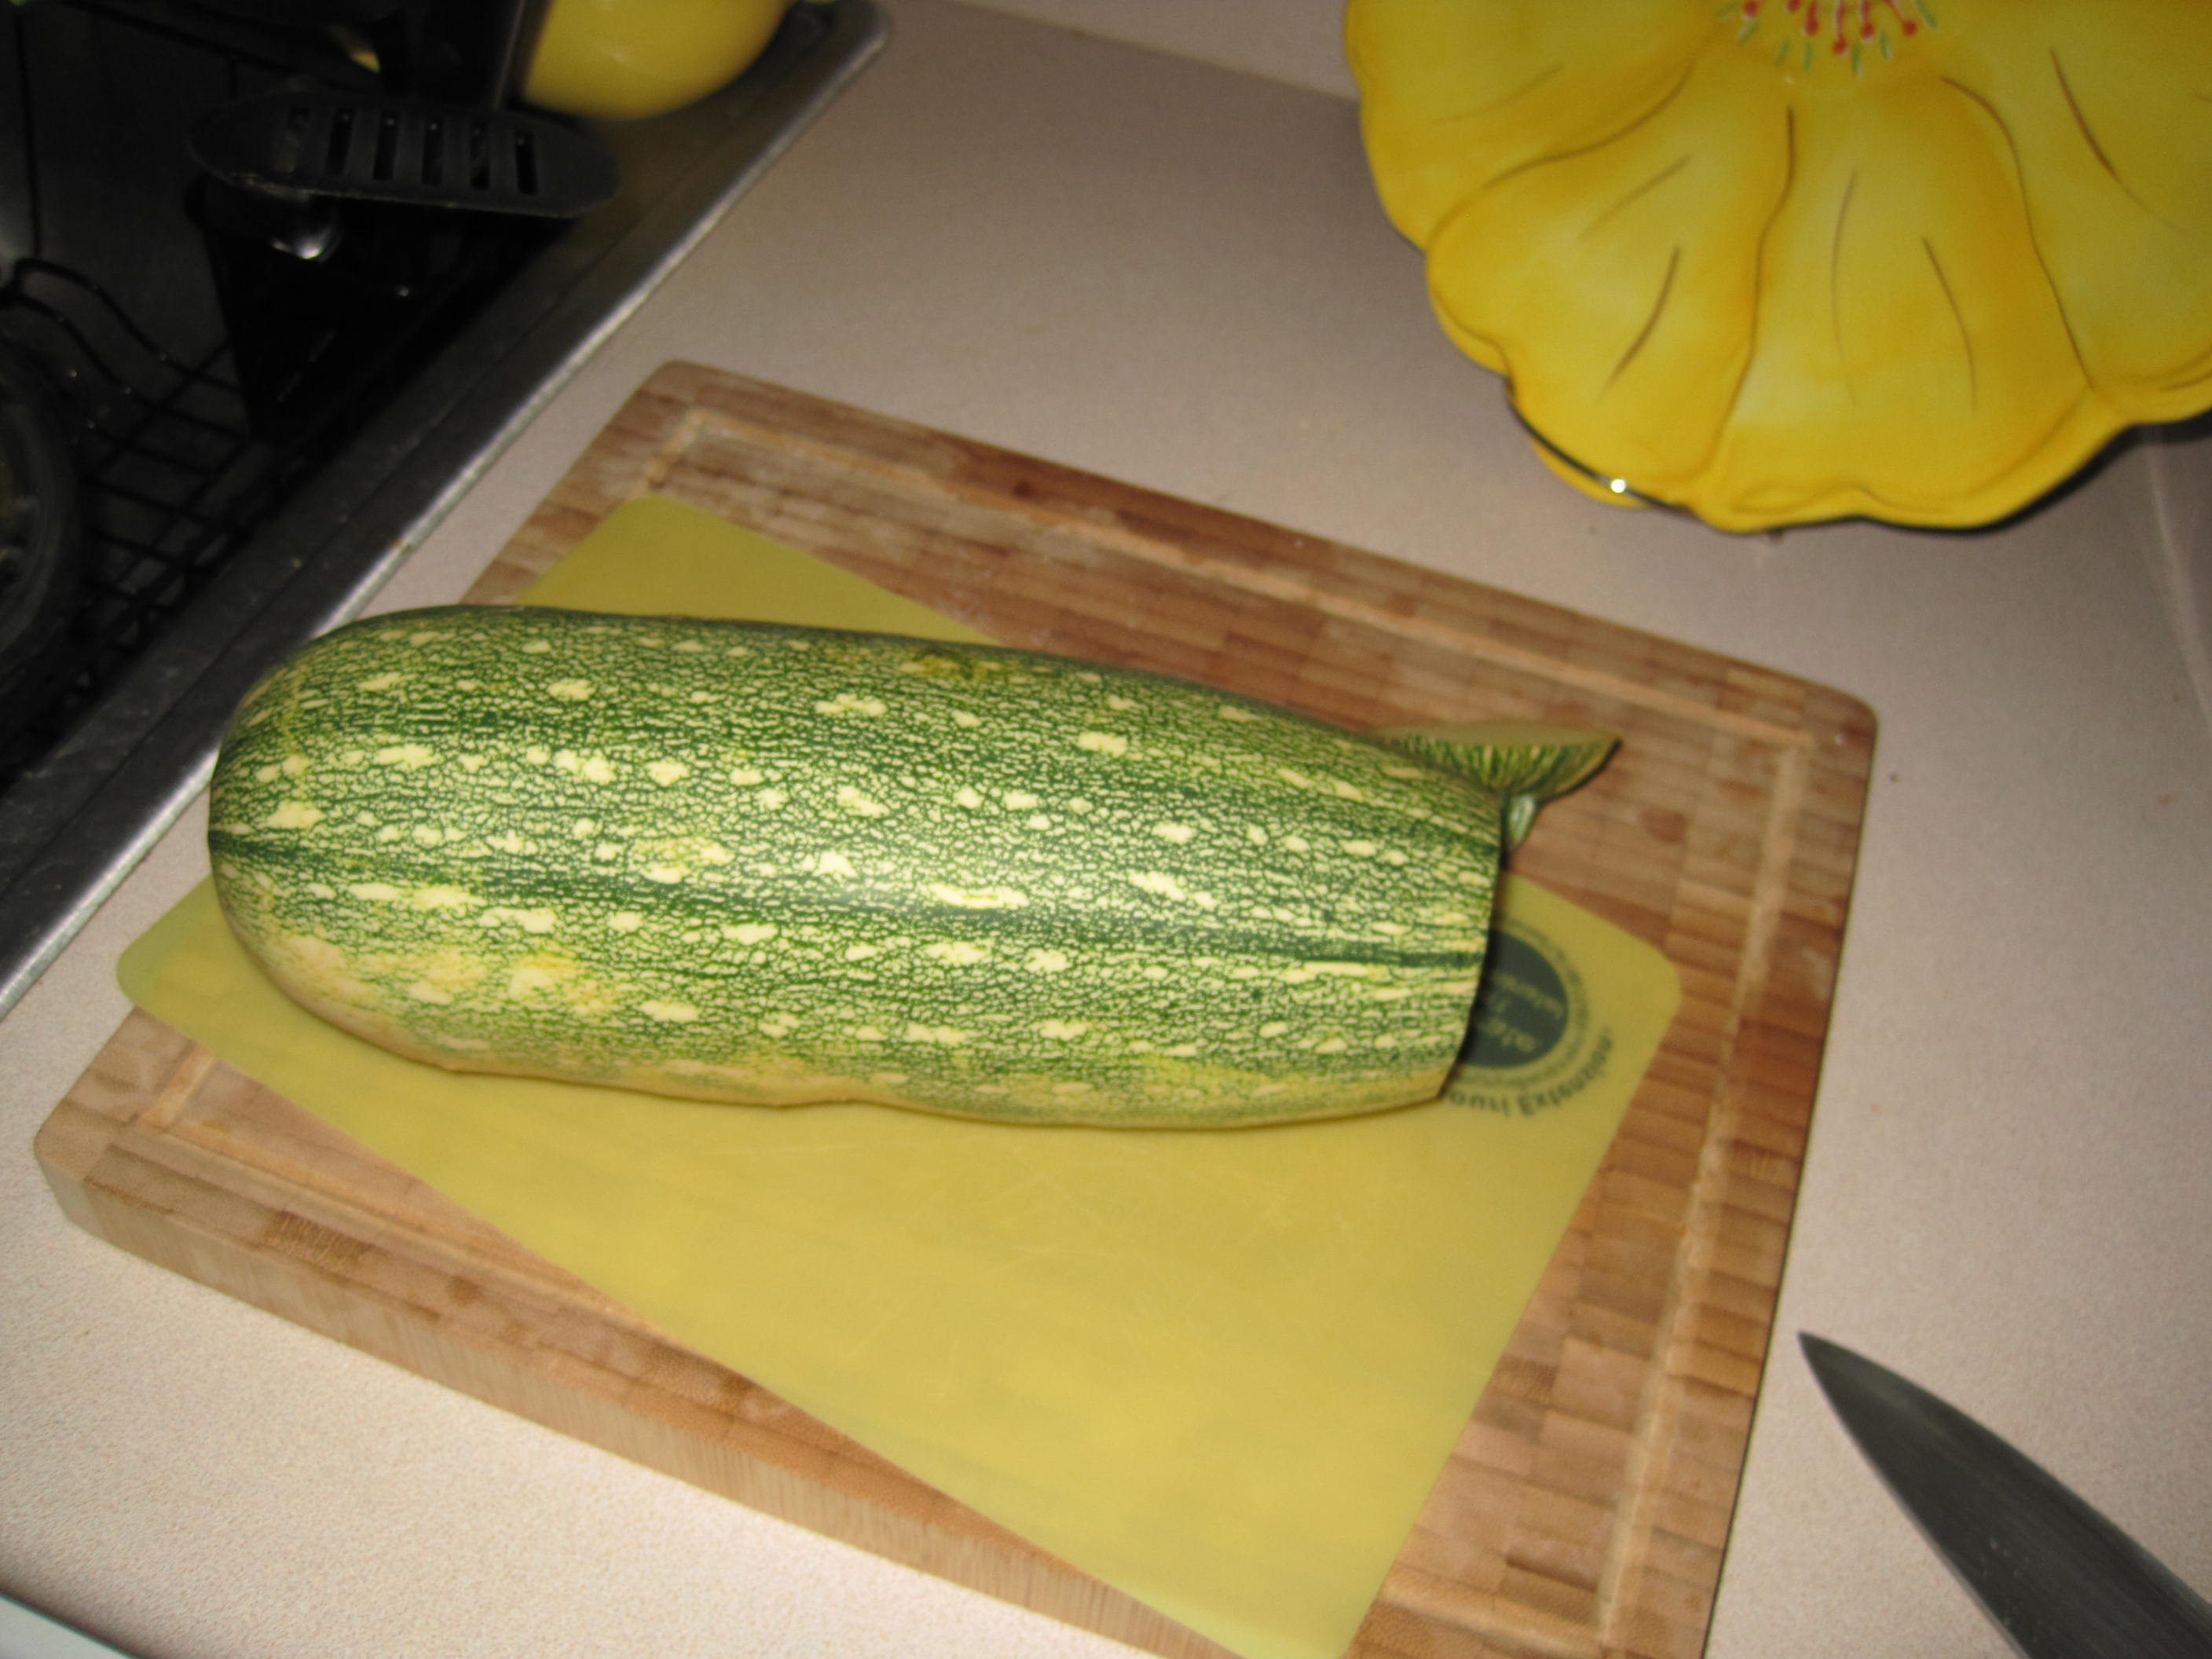 Giant zucchini, how I learned to love you. Now I can't wait for more garden-fresh goodies!